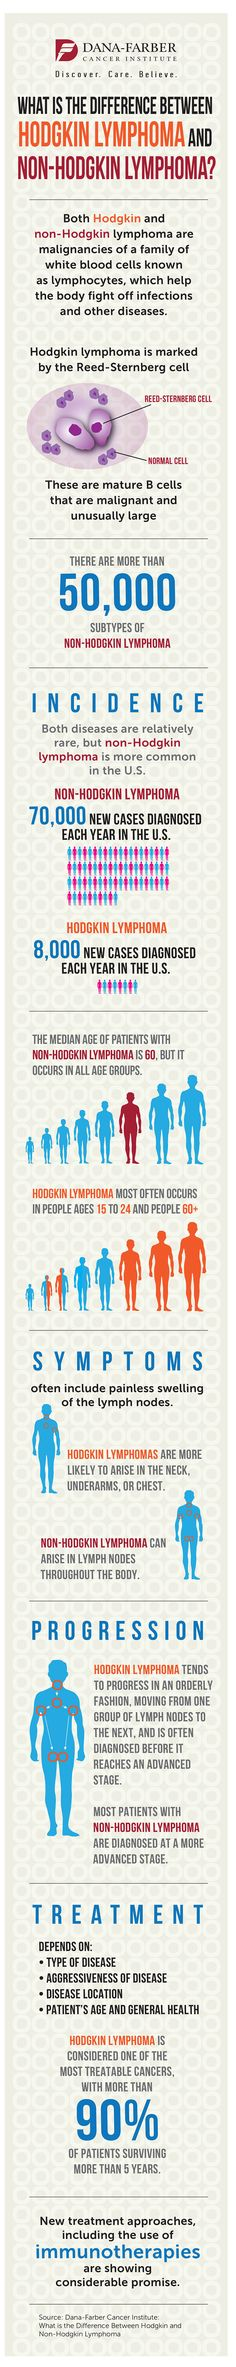 What Is the Difference Between Hodgkin Lymphoma and Non-Hodgkin Lymphoma?